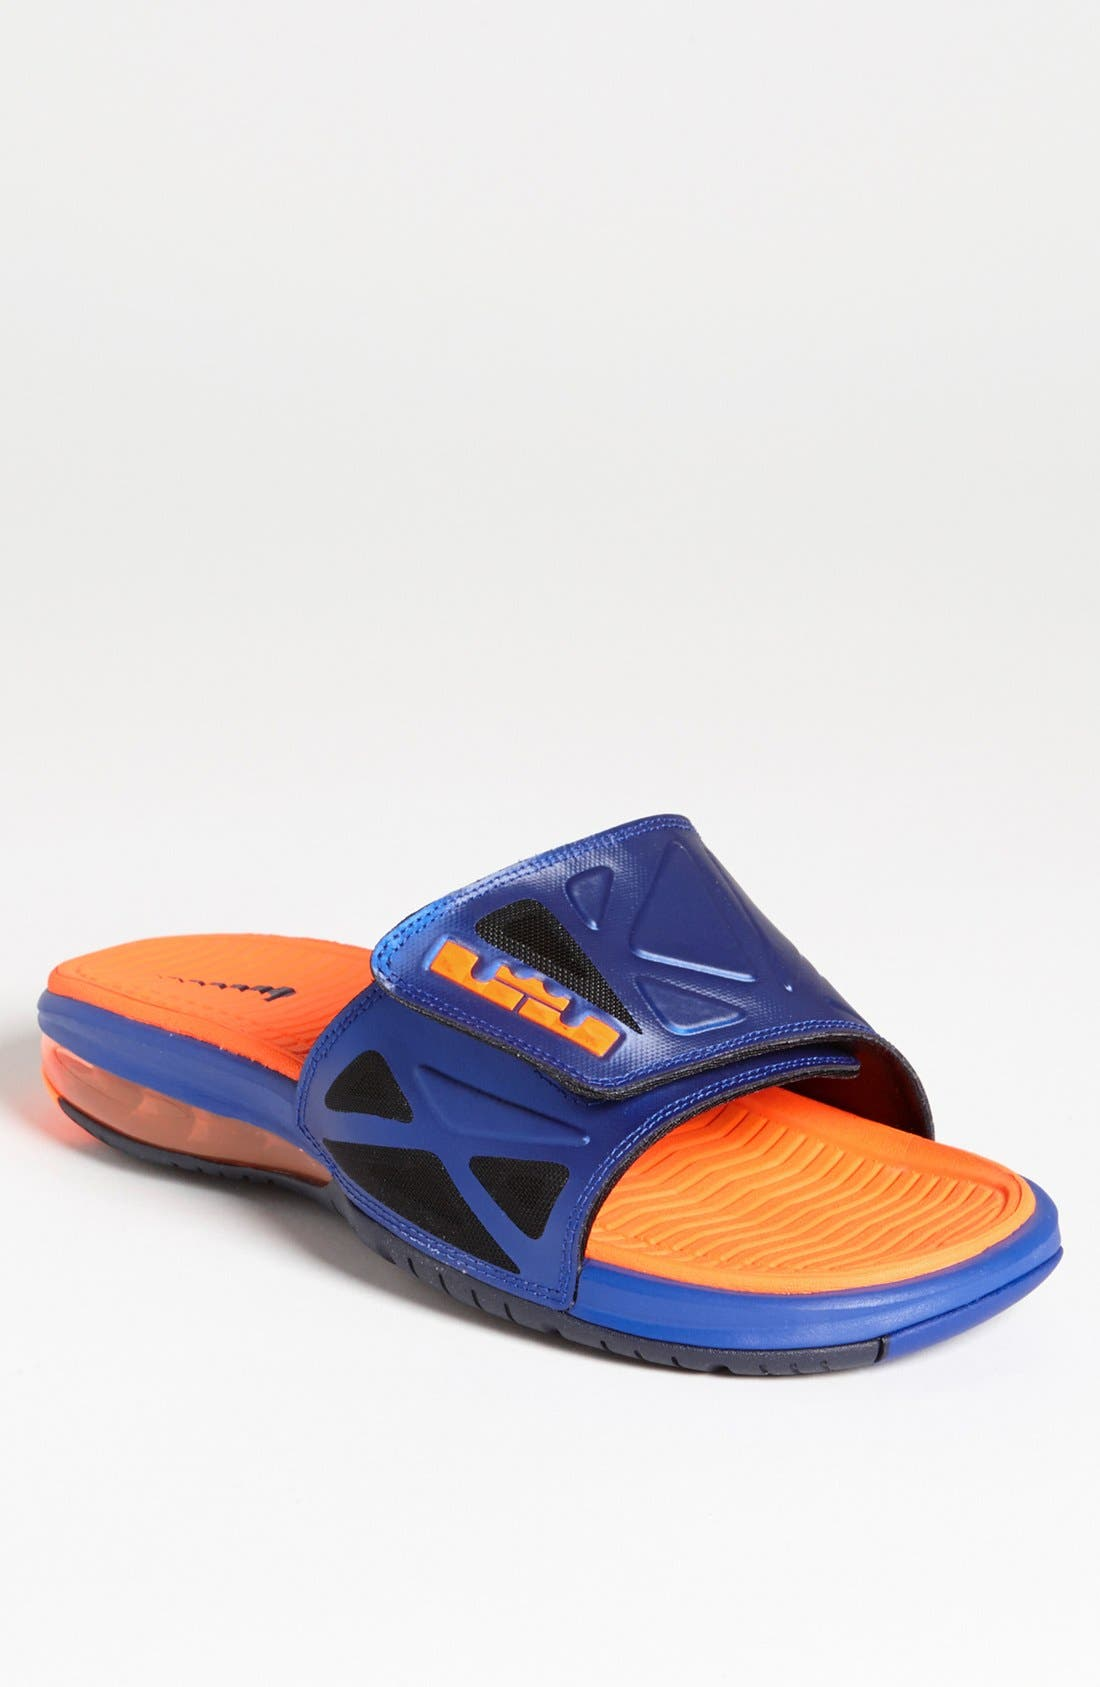 Main Image - Nike 'Air LeBron 2 Slide Elite' Sandal (Men)